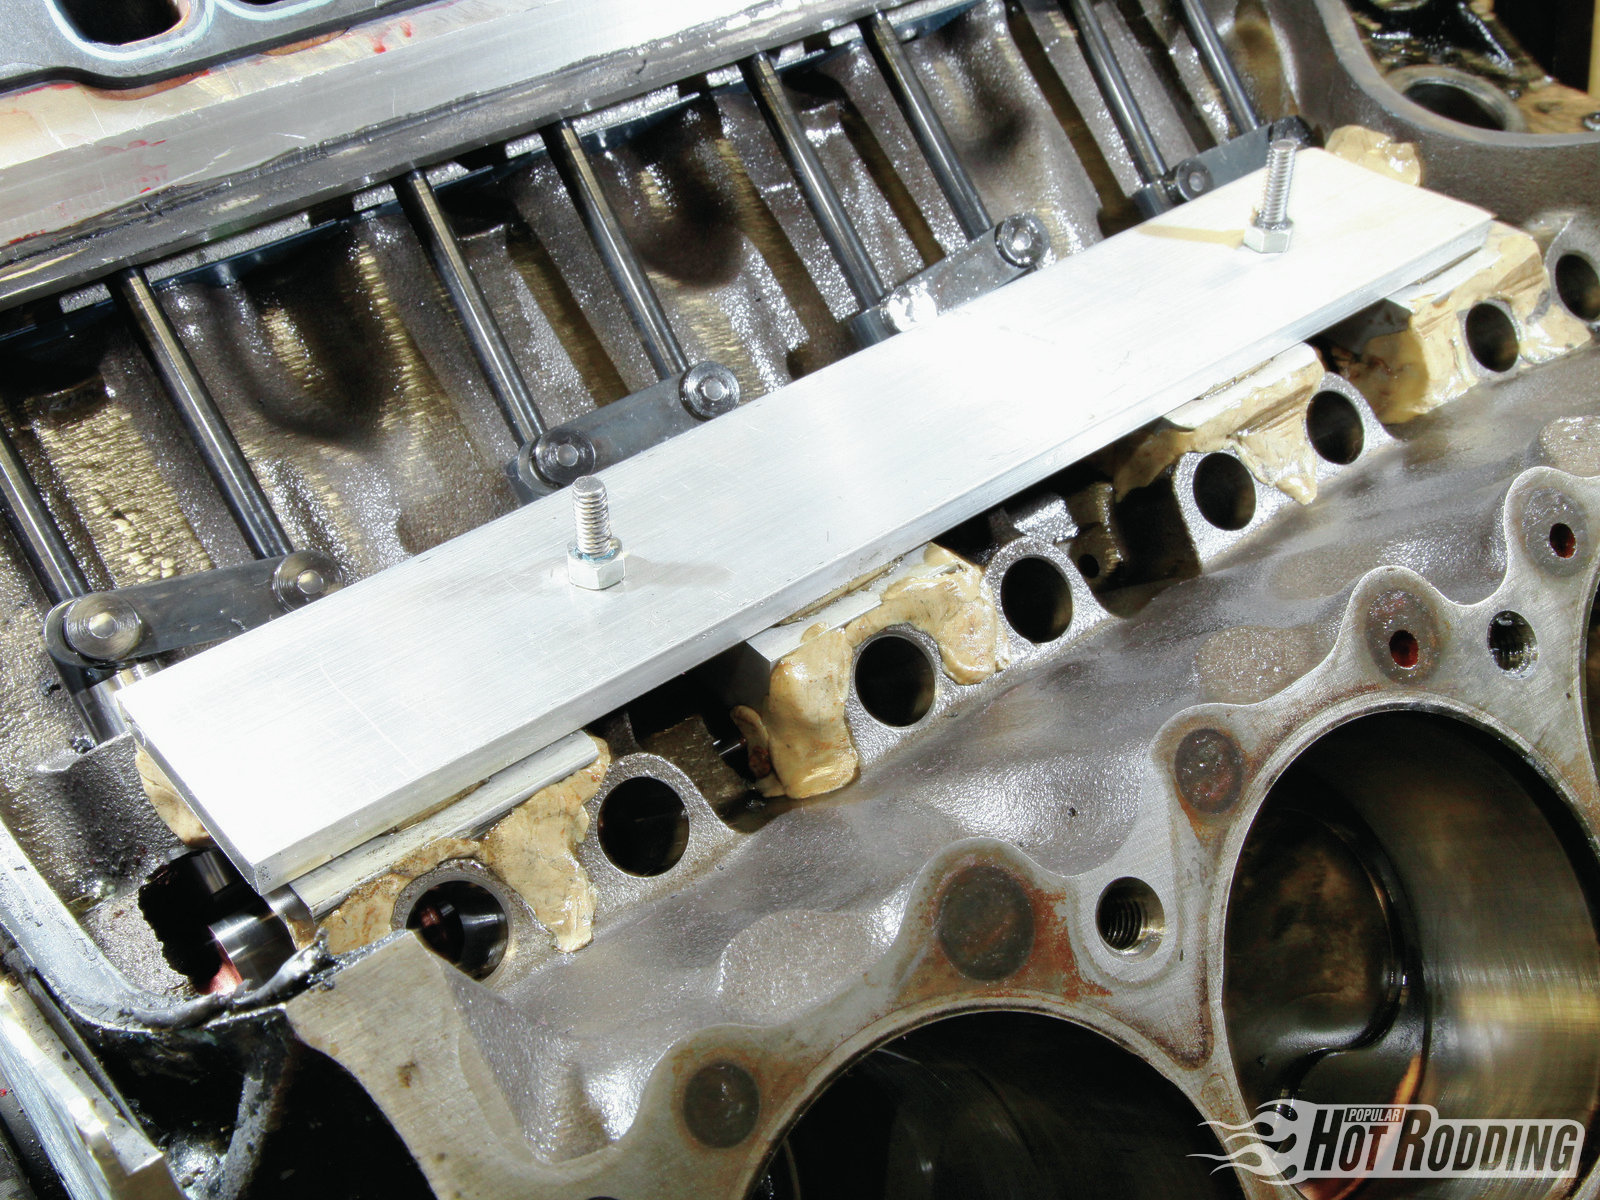 With the open lifter bores of a Pontiac block, side loading from a roller cam can induce stresses that can potentially result in breakage. Semchee buttressed this area with custom aluminum supports bedded in epoxy.